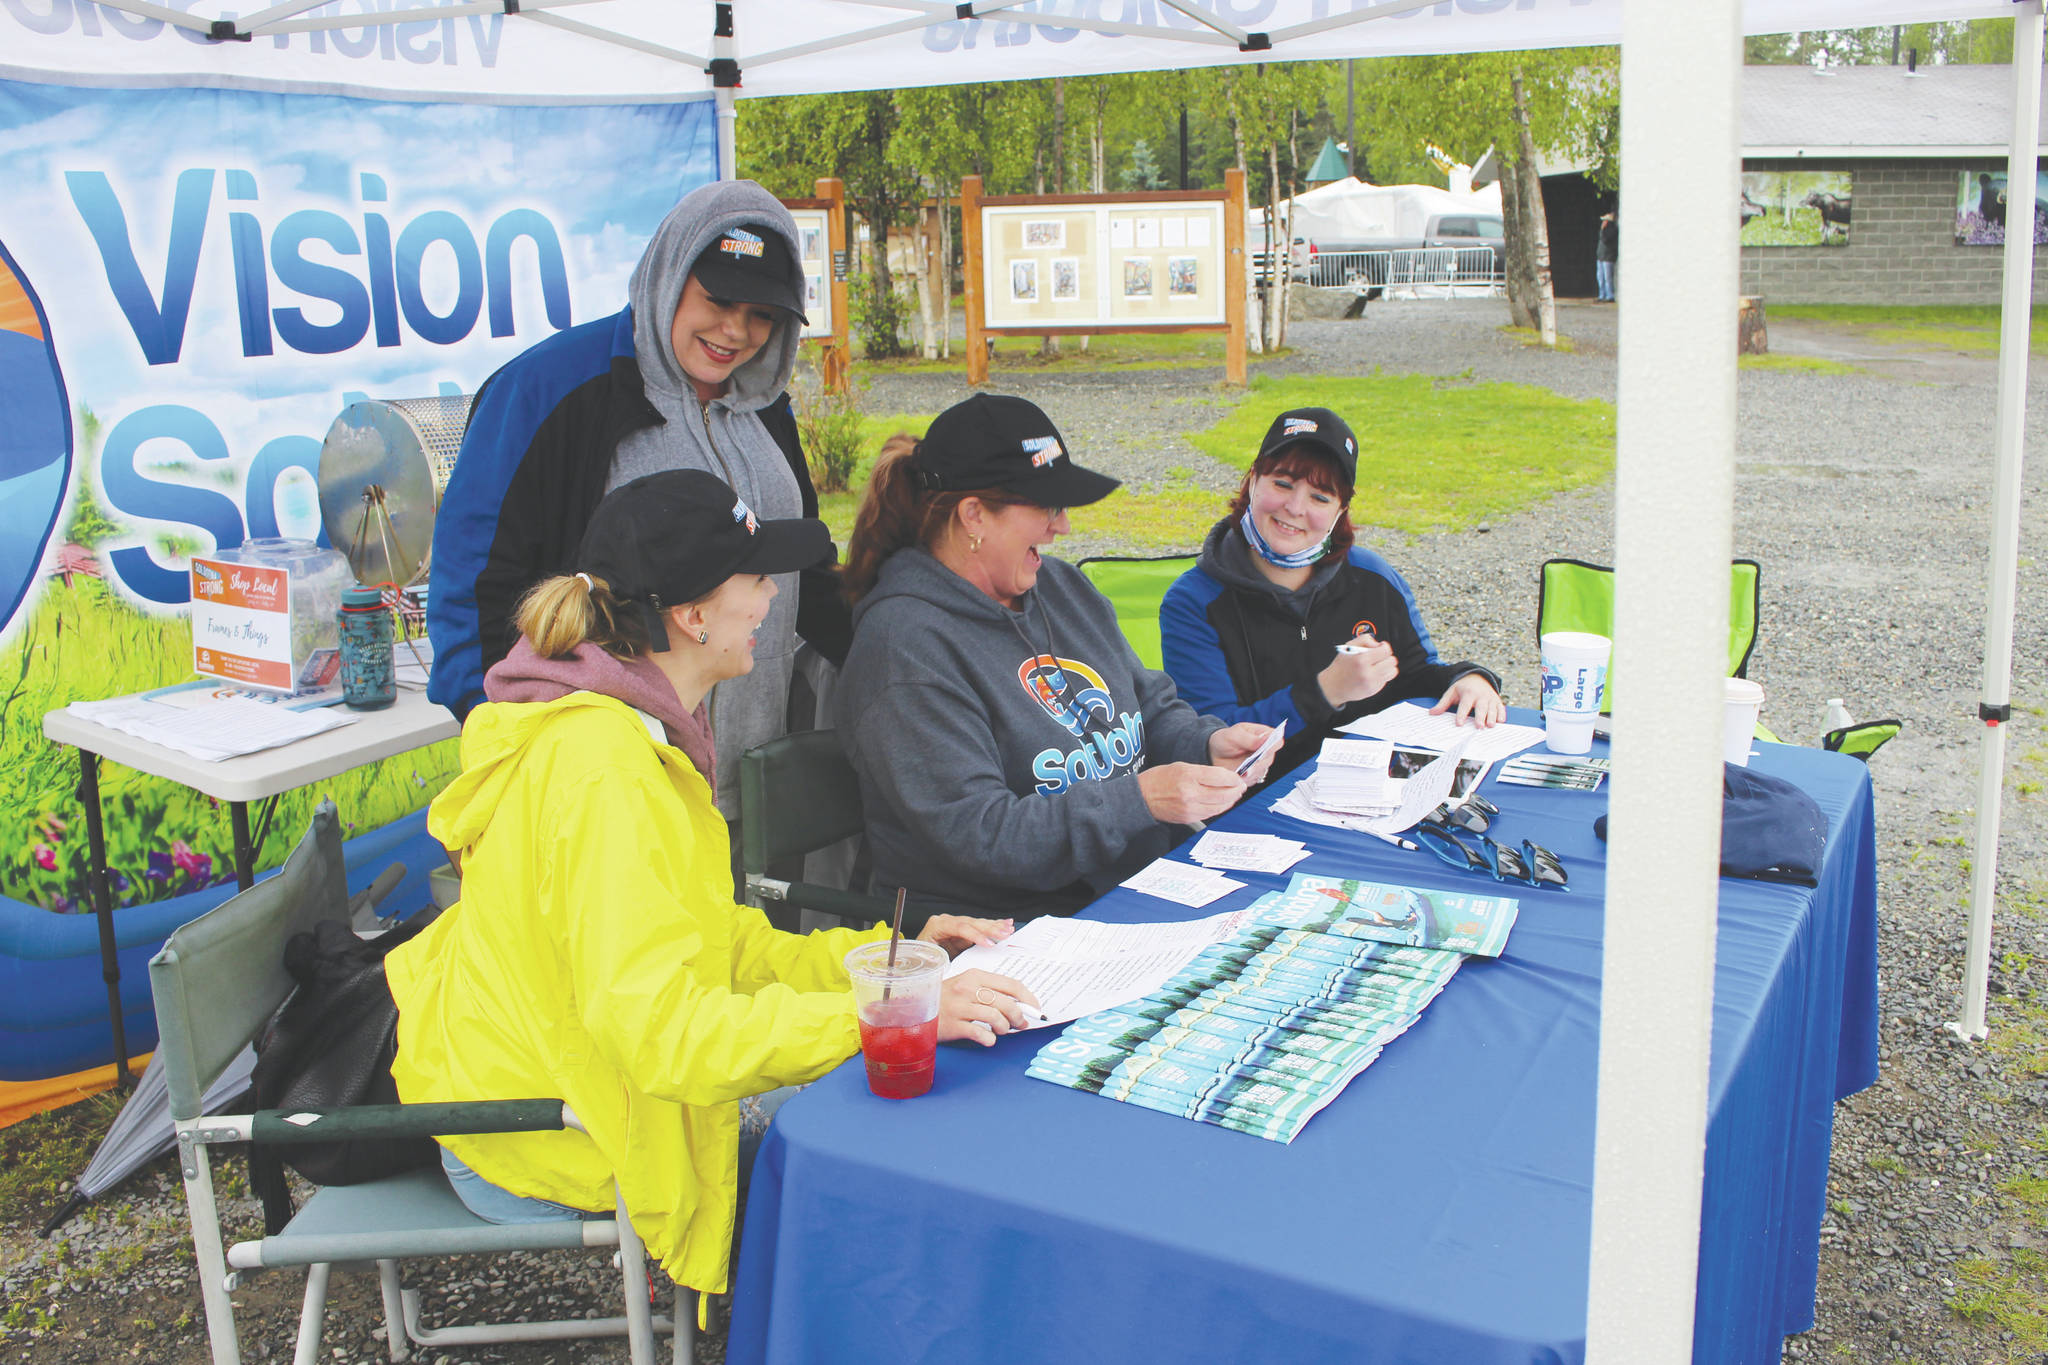 From left, Monique Burgin, Shanon Davis, Teresa Honrud and Sara Hondel of the Soldotna Chamber of Commerce on Wednesday add up the money spent as part of the Chamber's Soldotna Strong Shop Local campaign.